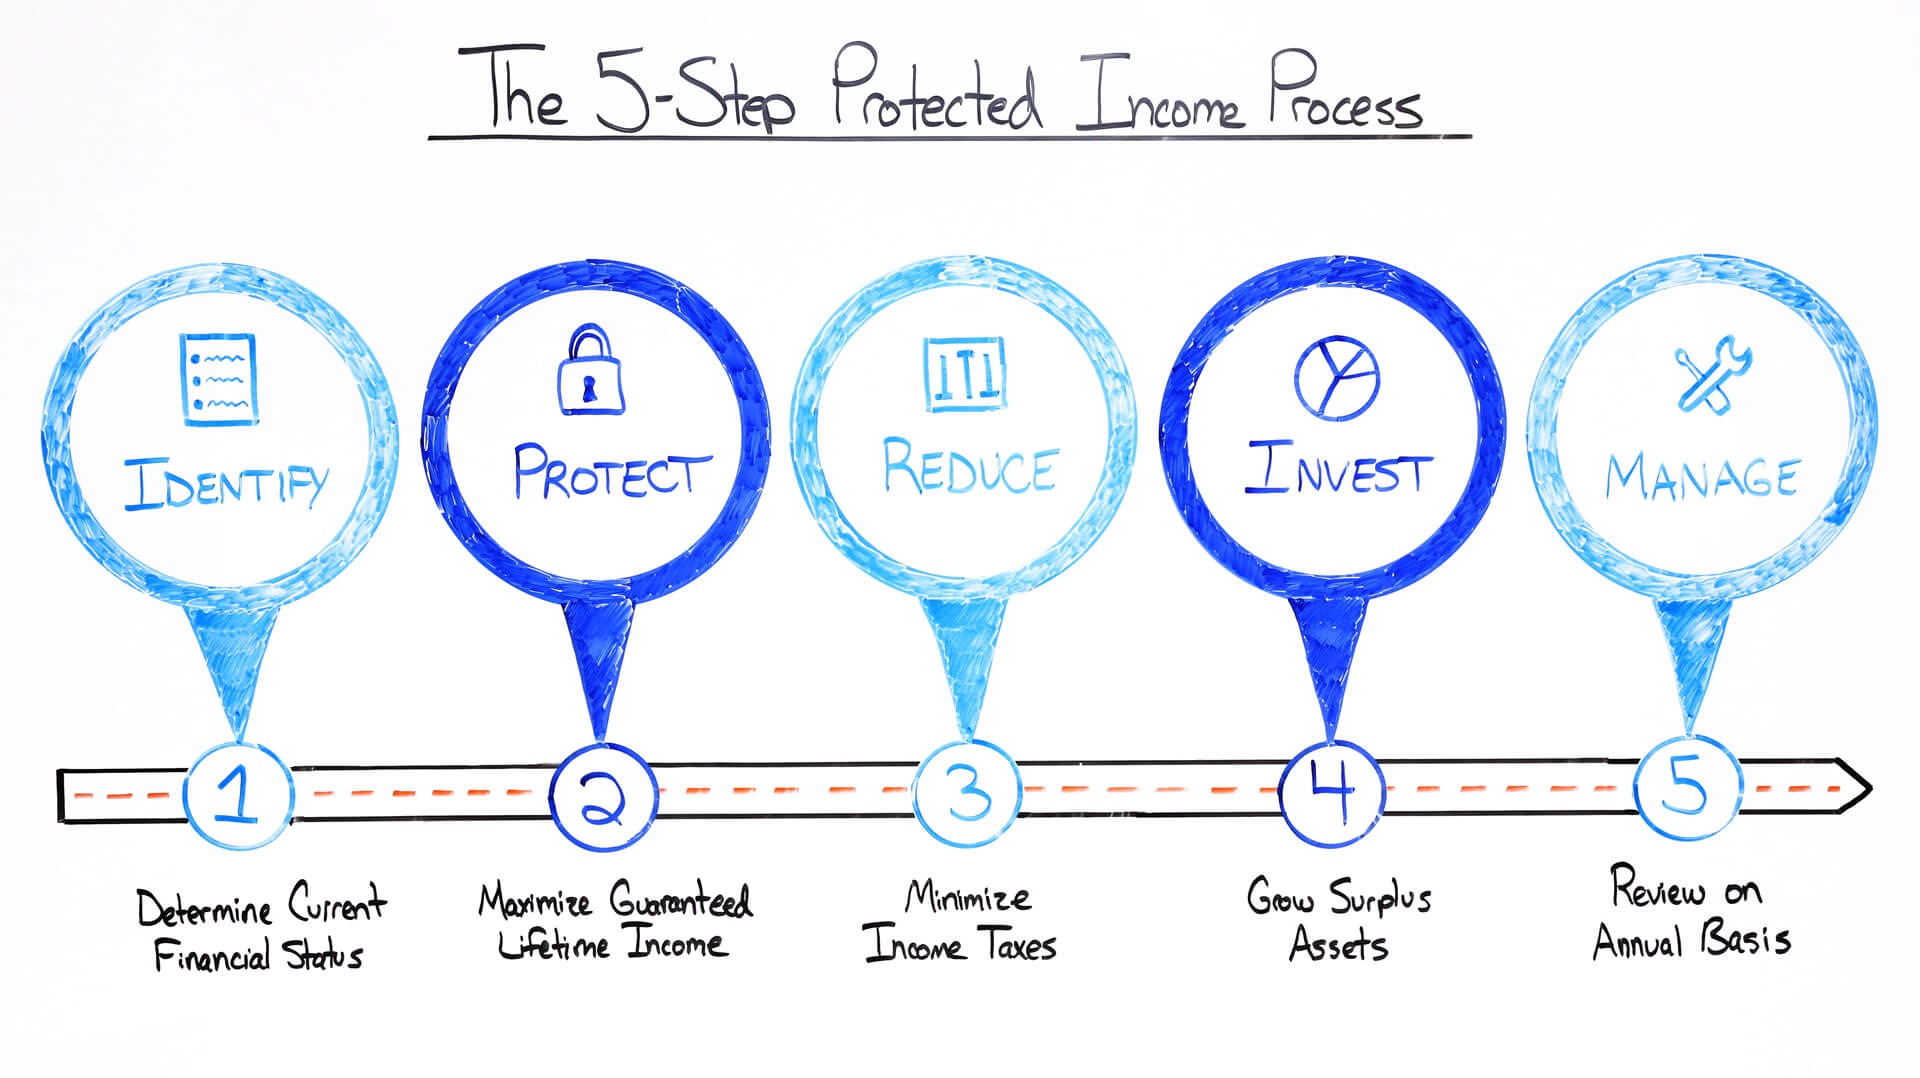 The 5-Step Protected Income Process